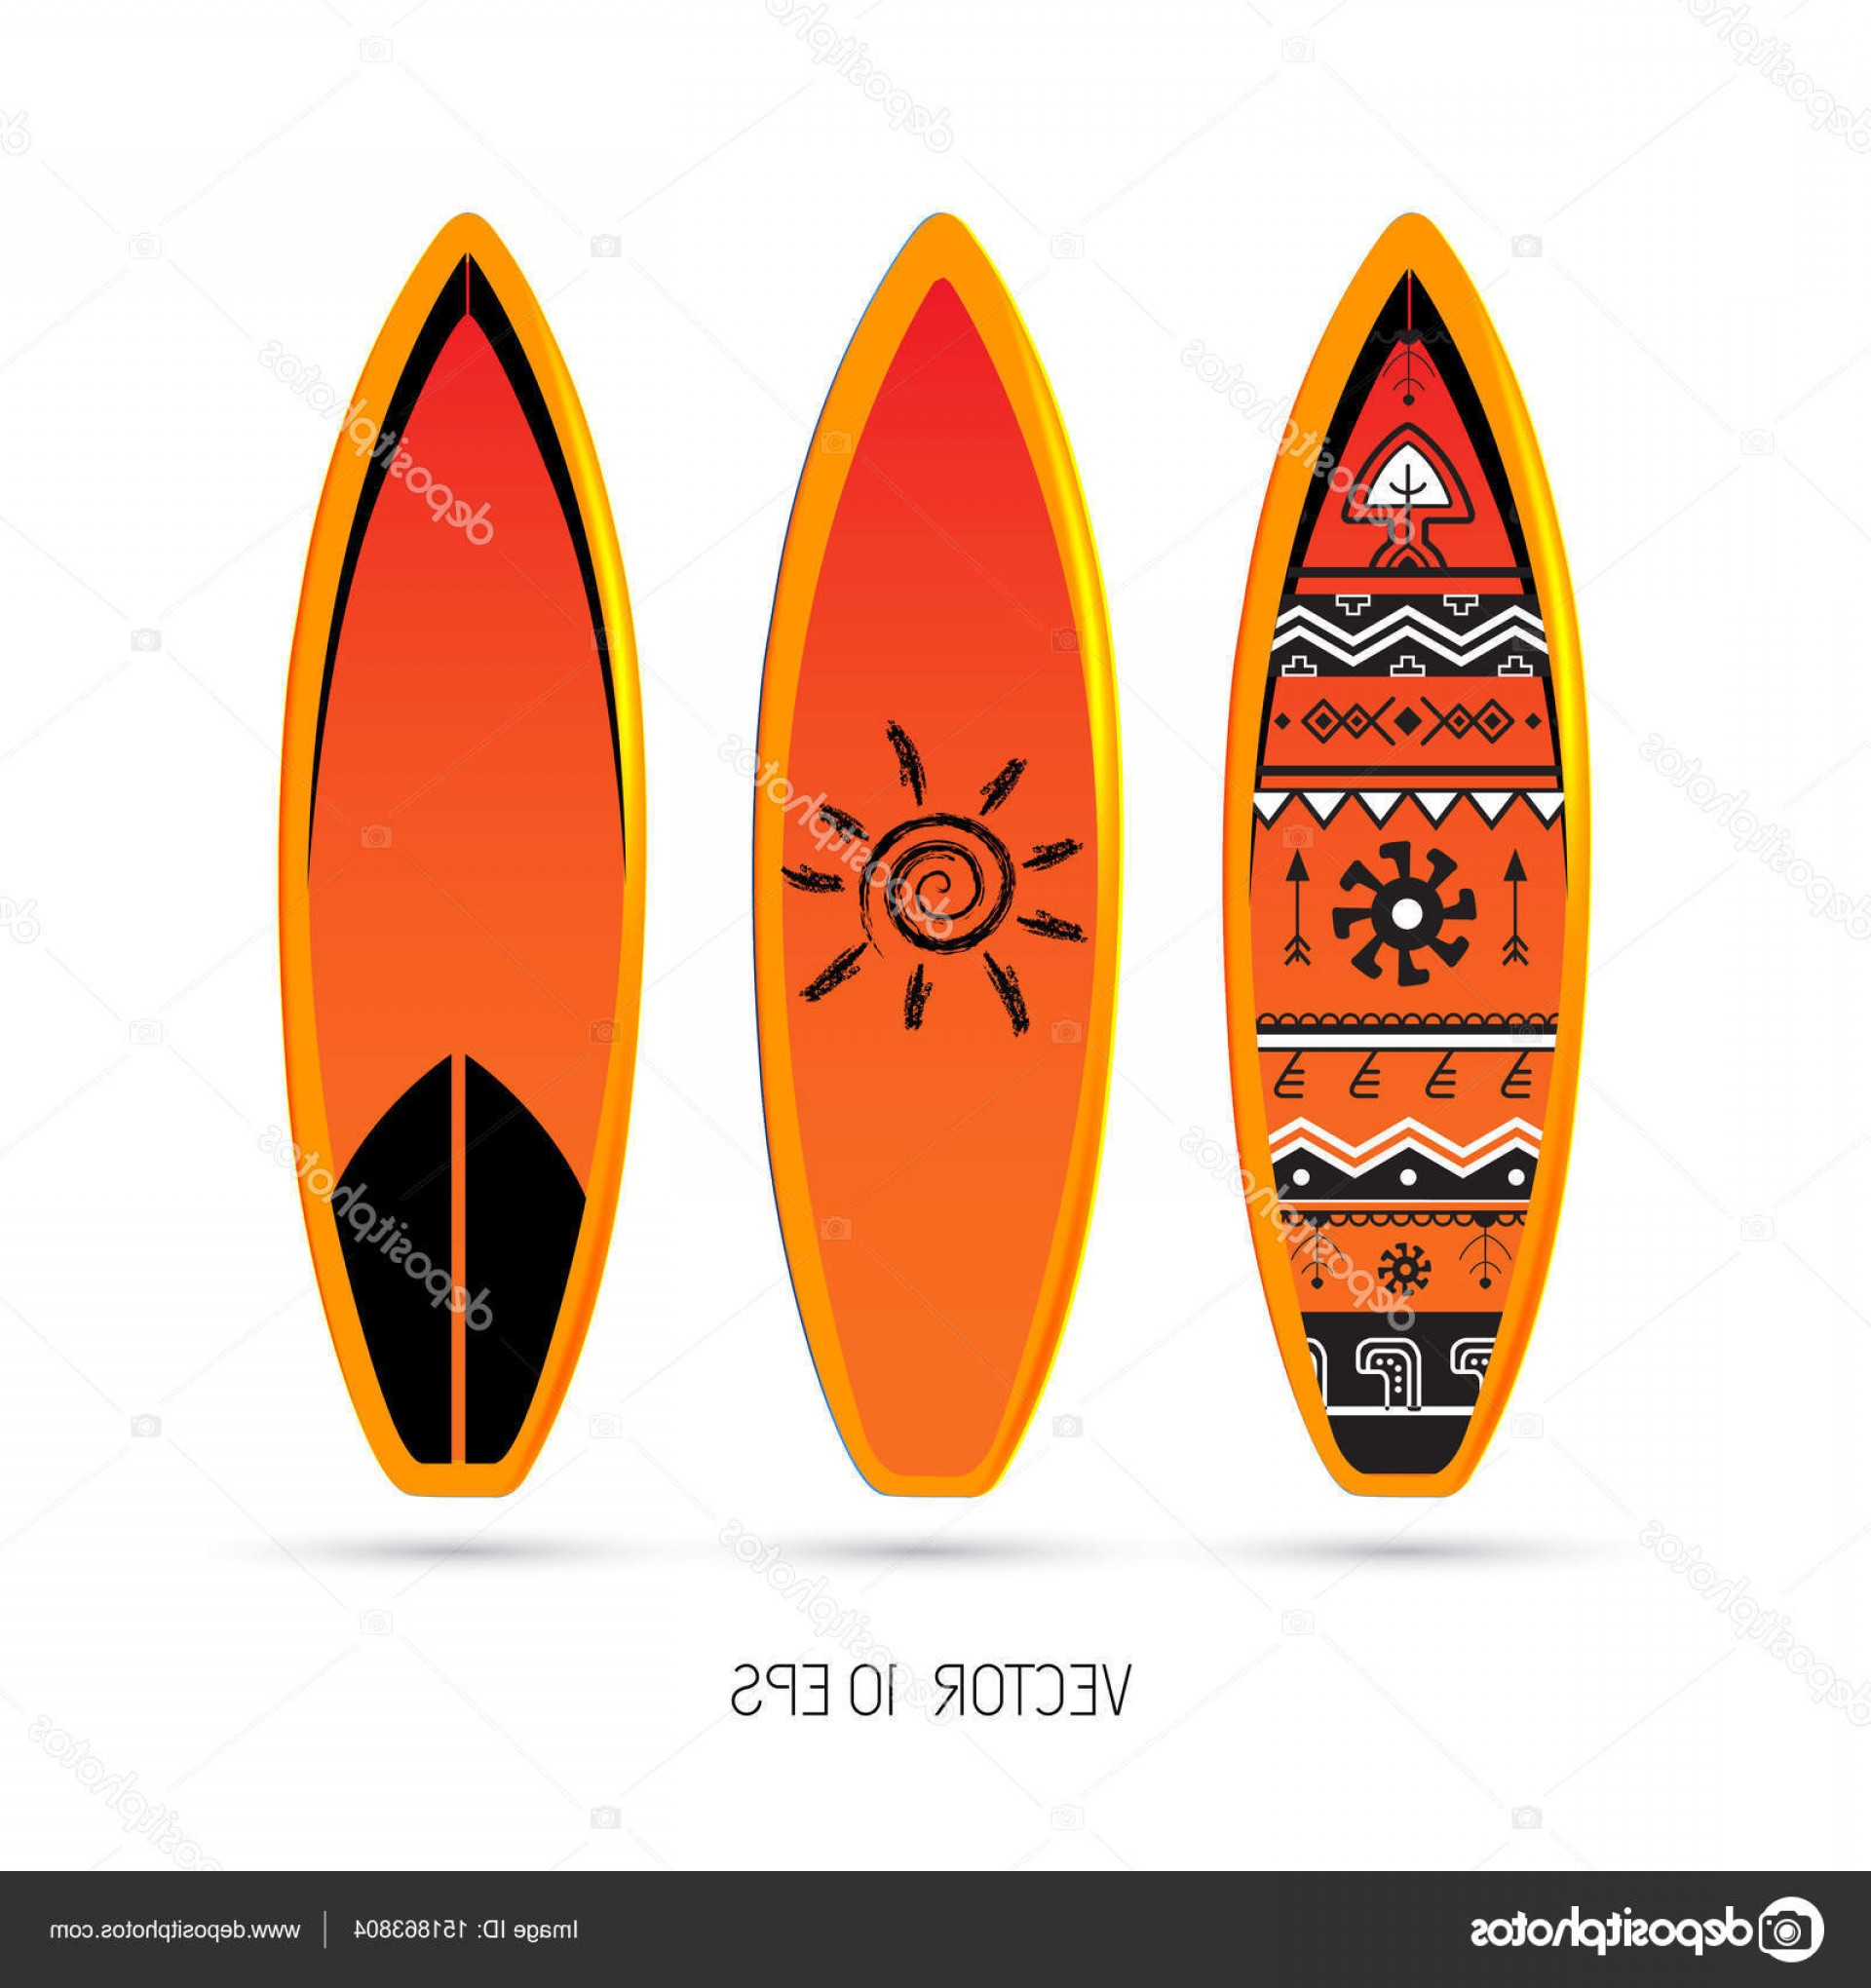 Orange Surfboard Vector: Stock Illustration Set Of Surfboards Vector Illustration